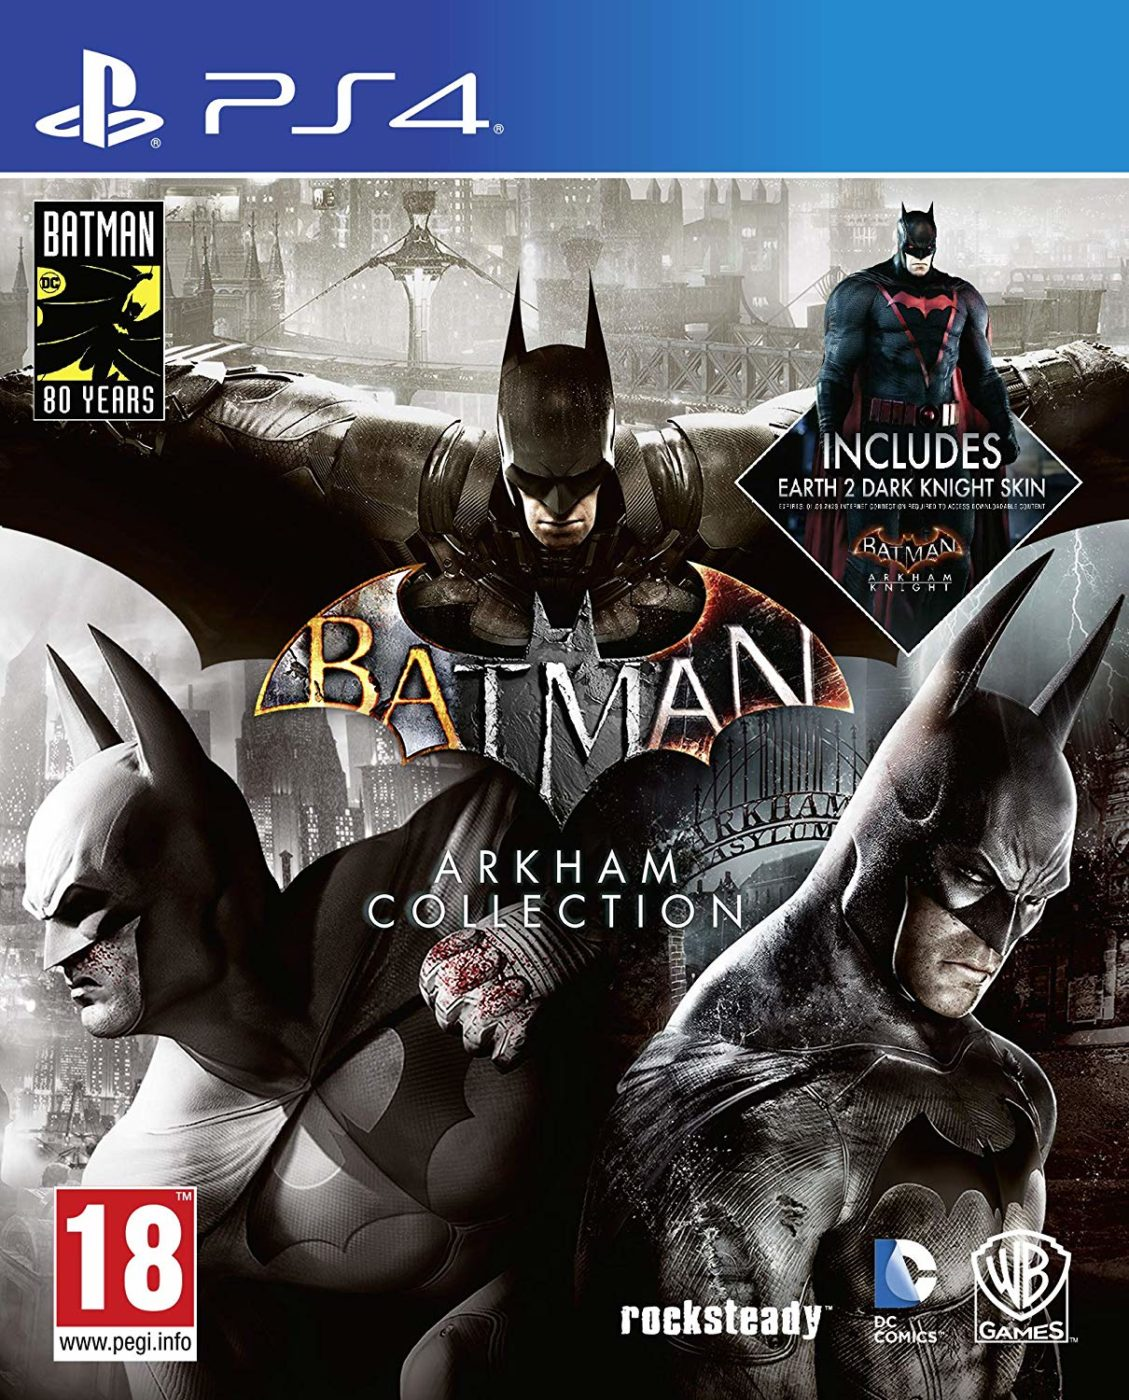 batman arkham collection, Batman Arkham Collection Coming September 6, Here's What'll Be in It, MP1st, MP1st